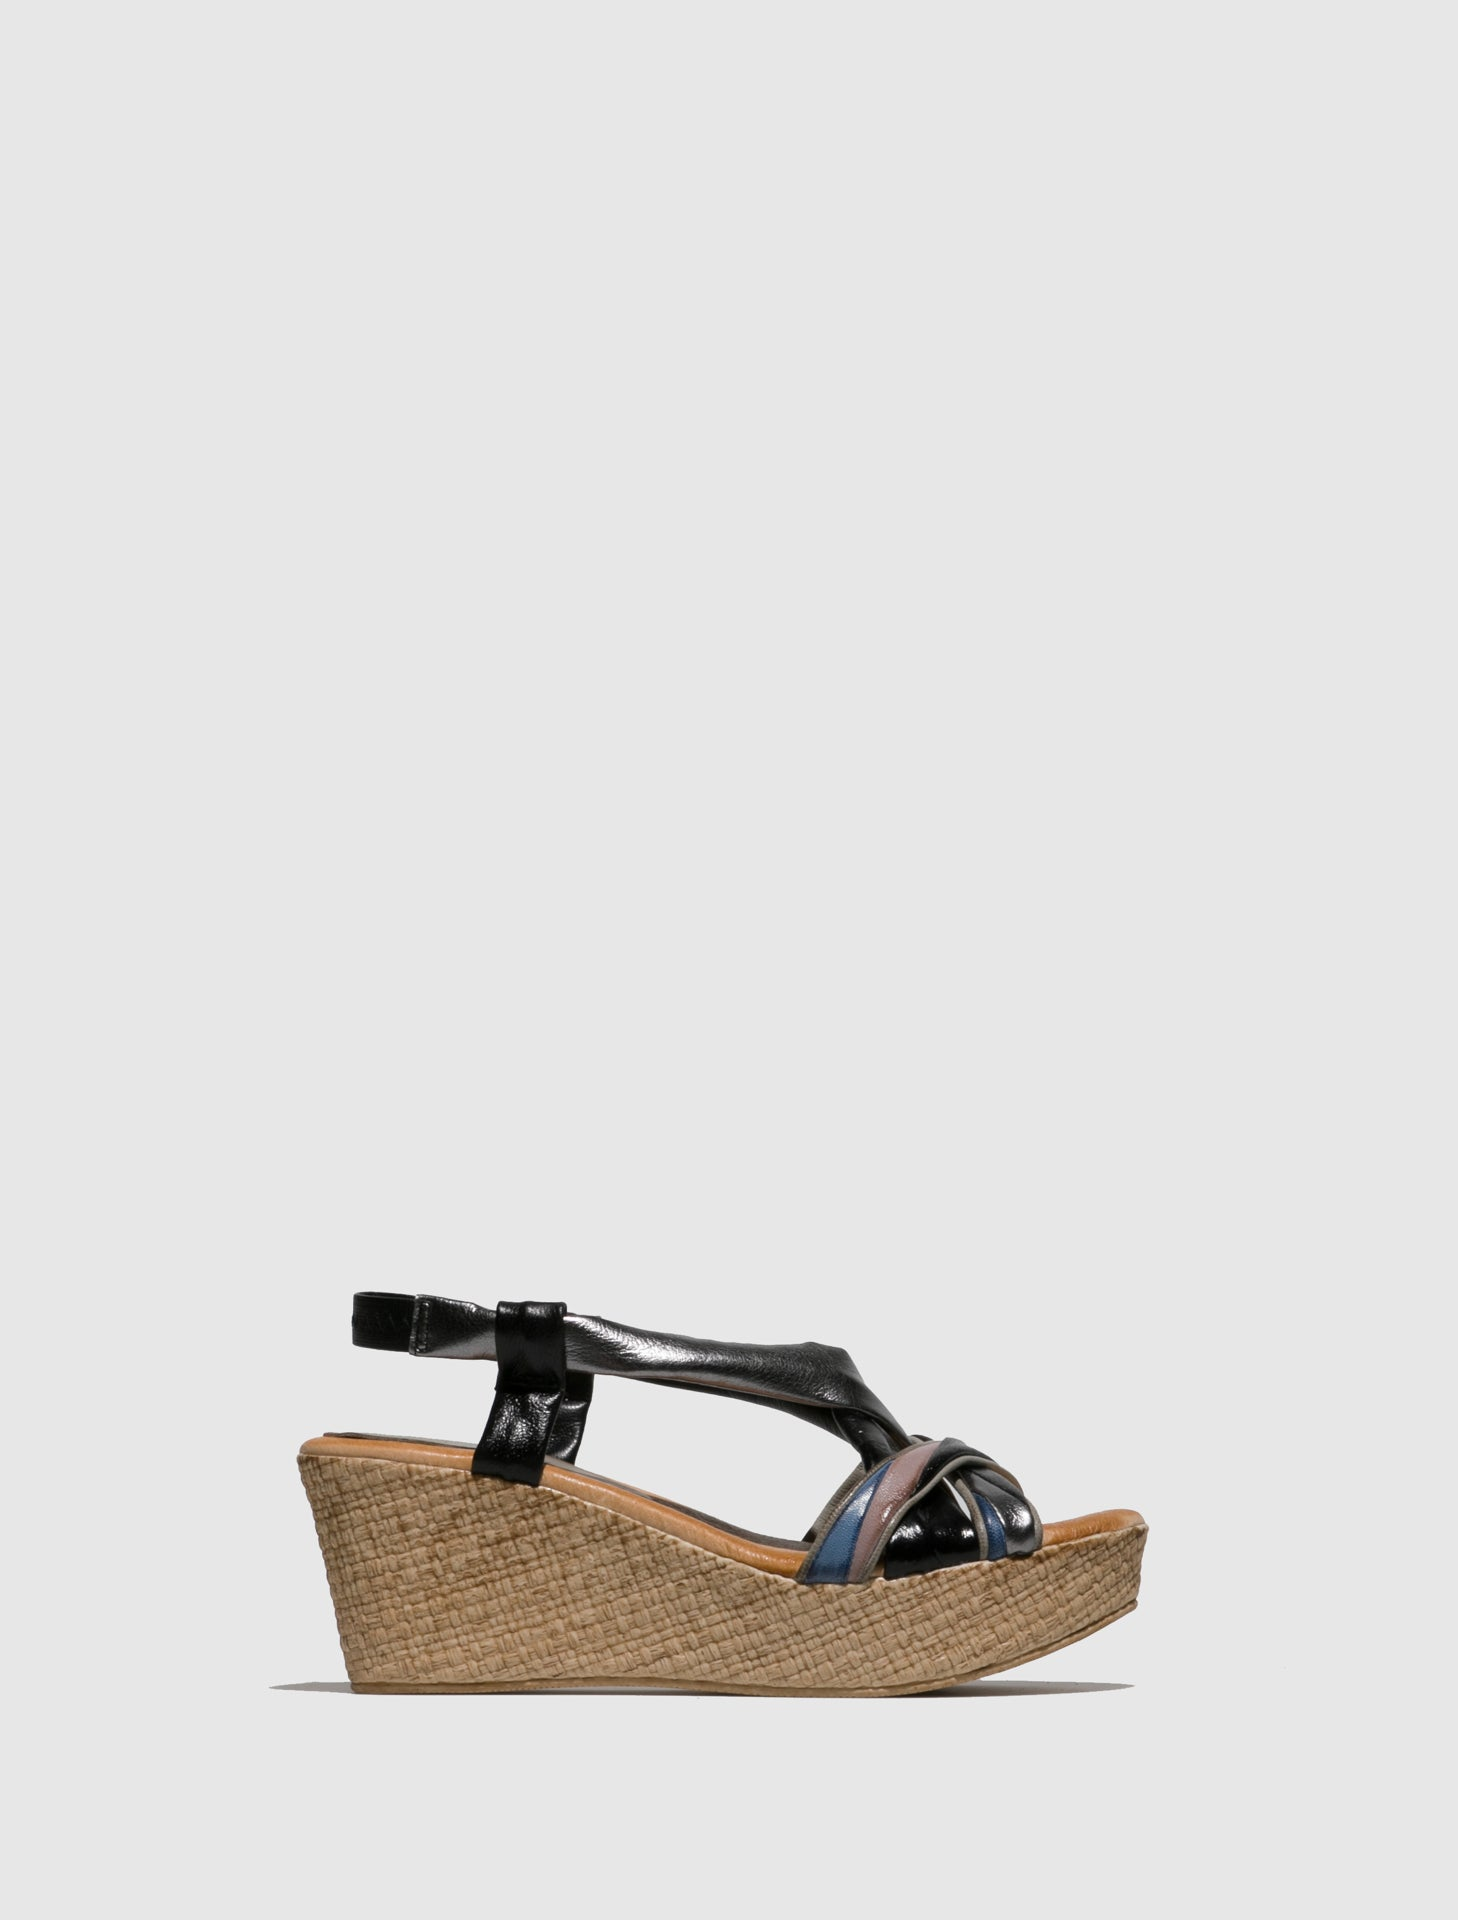 Marila Shoes Silver Black Wedge Sandals